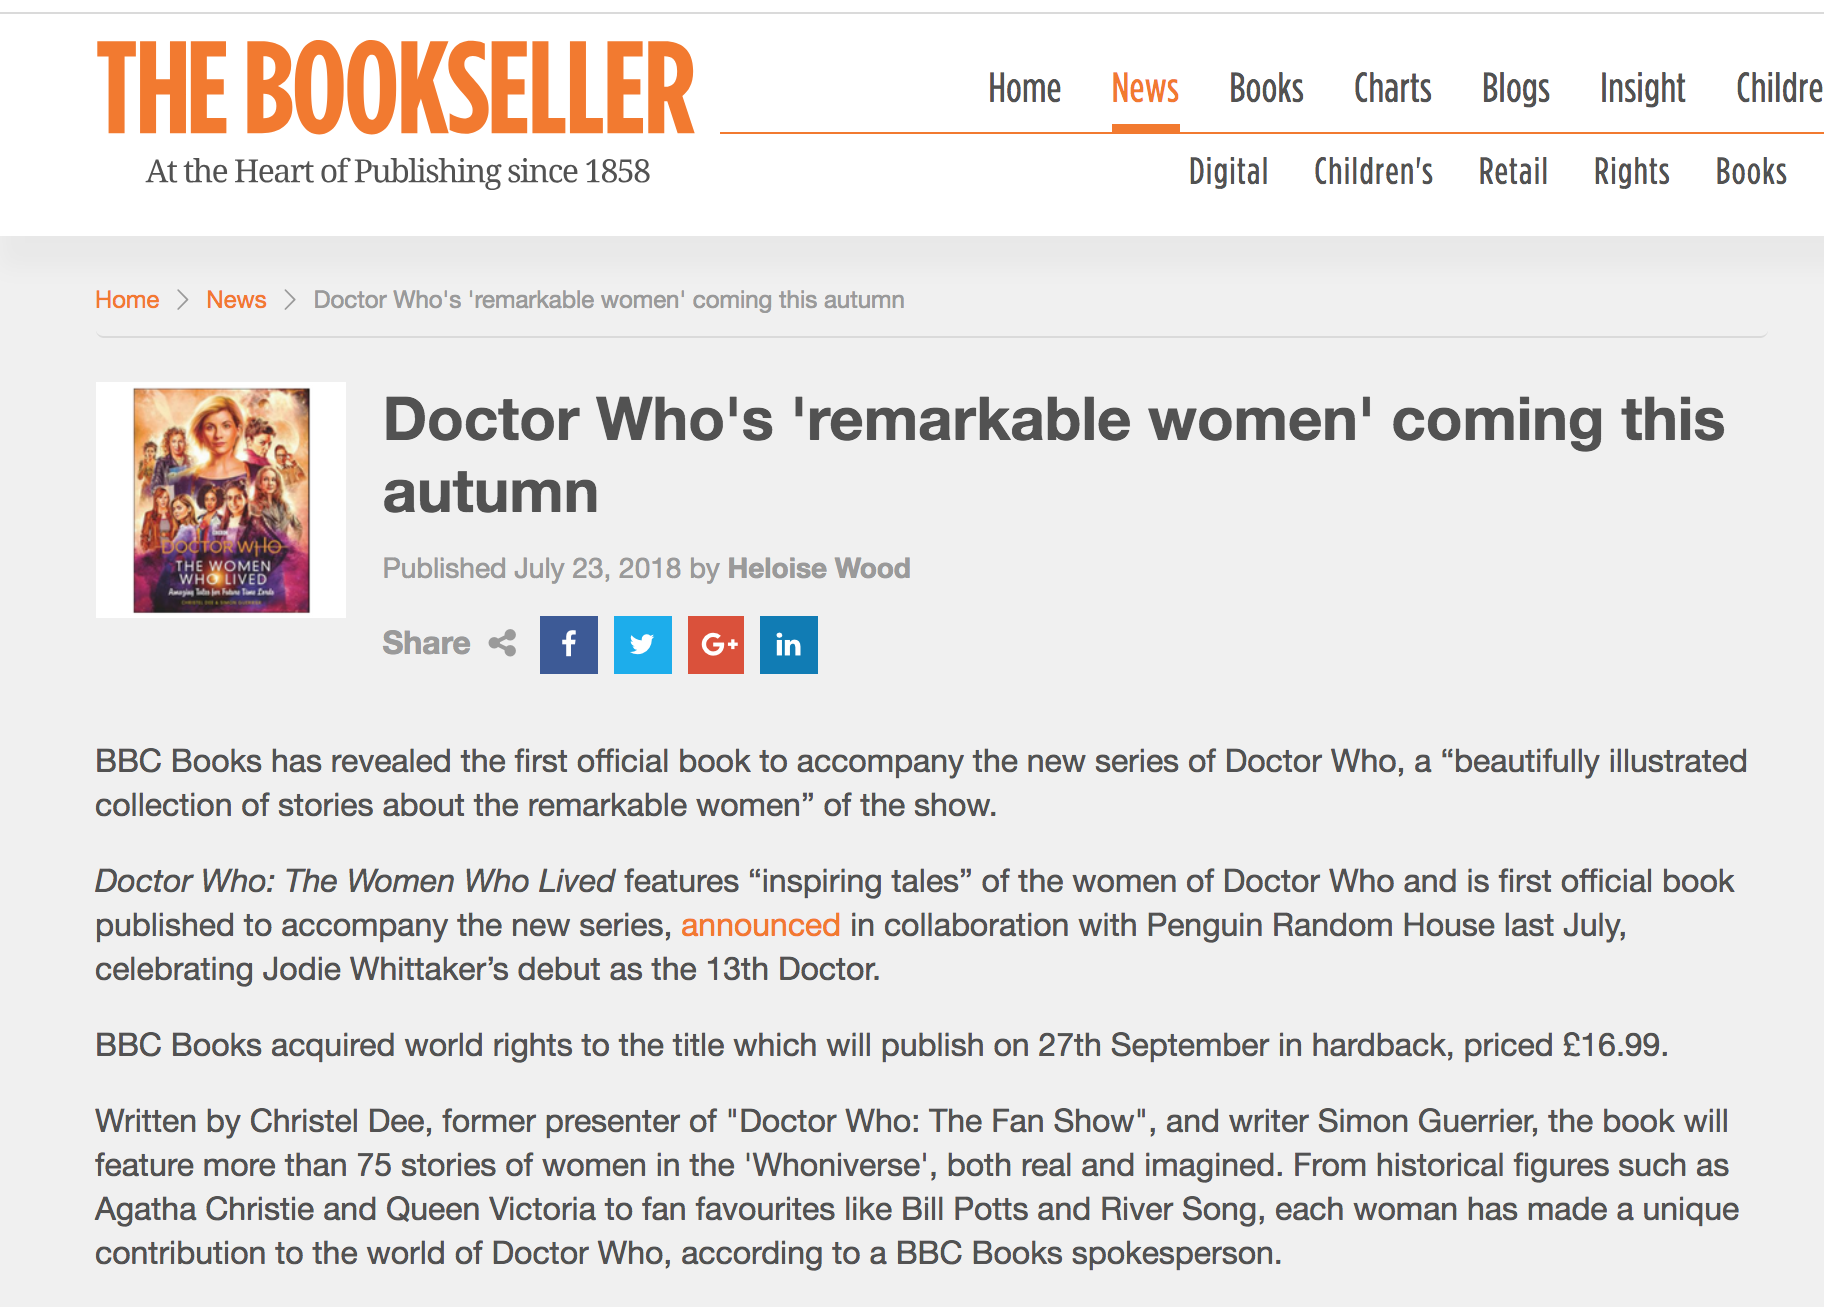 screencapture-thebookseller-news-bbc-books-publishes-remarkable-women-book-doctor-who-833691-2018-08-14-23_25_38 copy.png